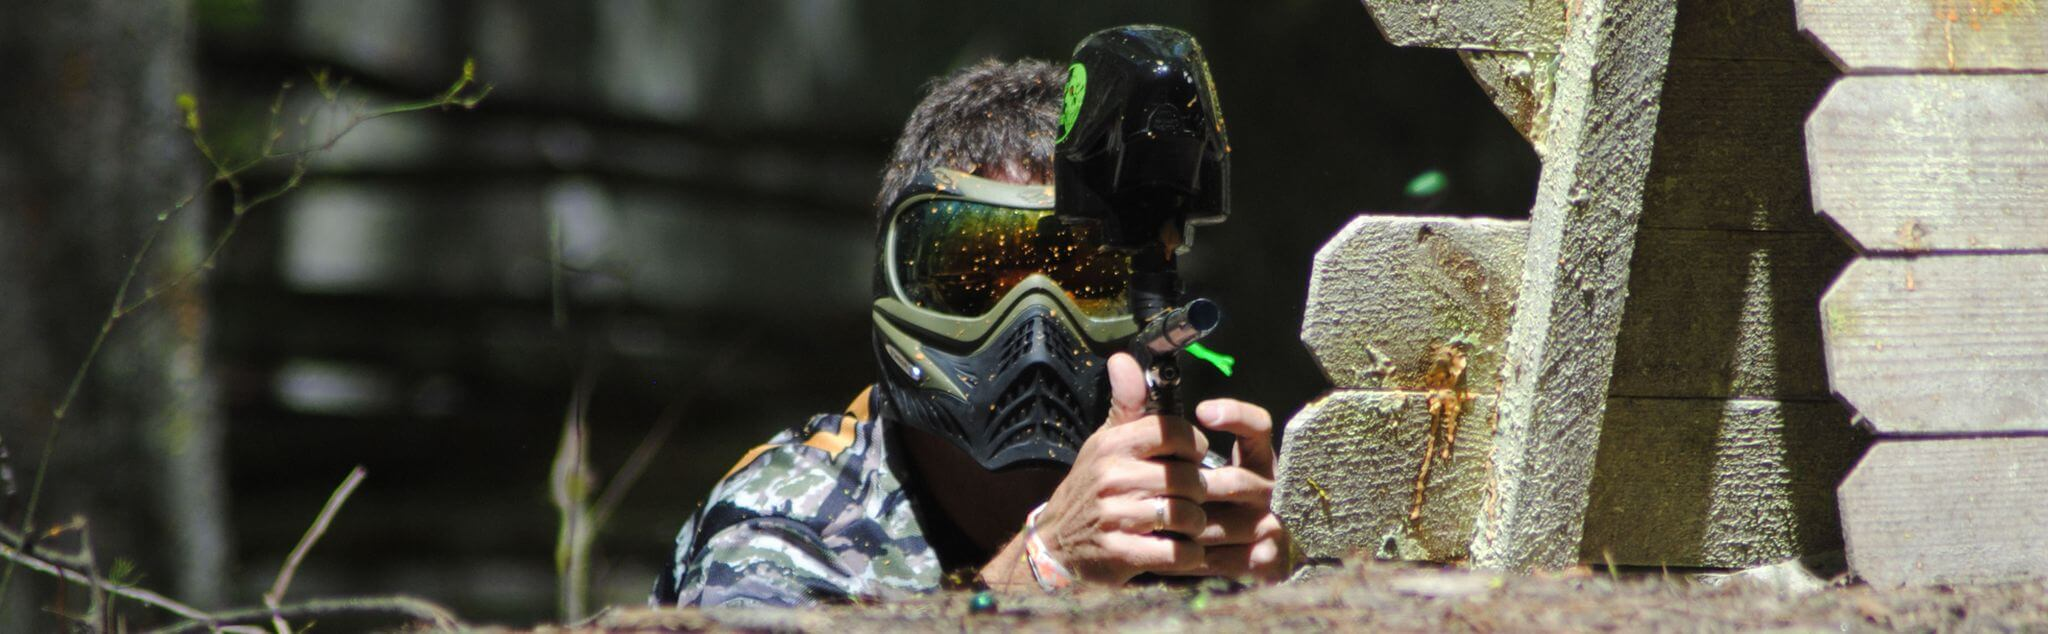 Paintball a Viterbo